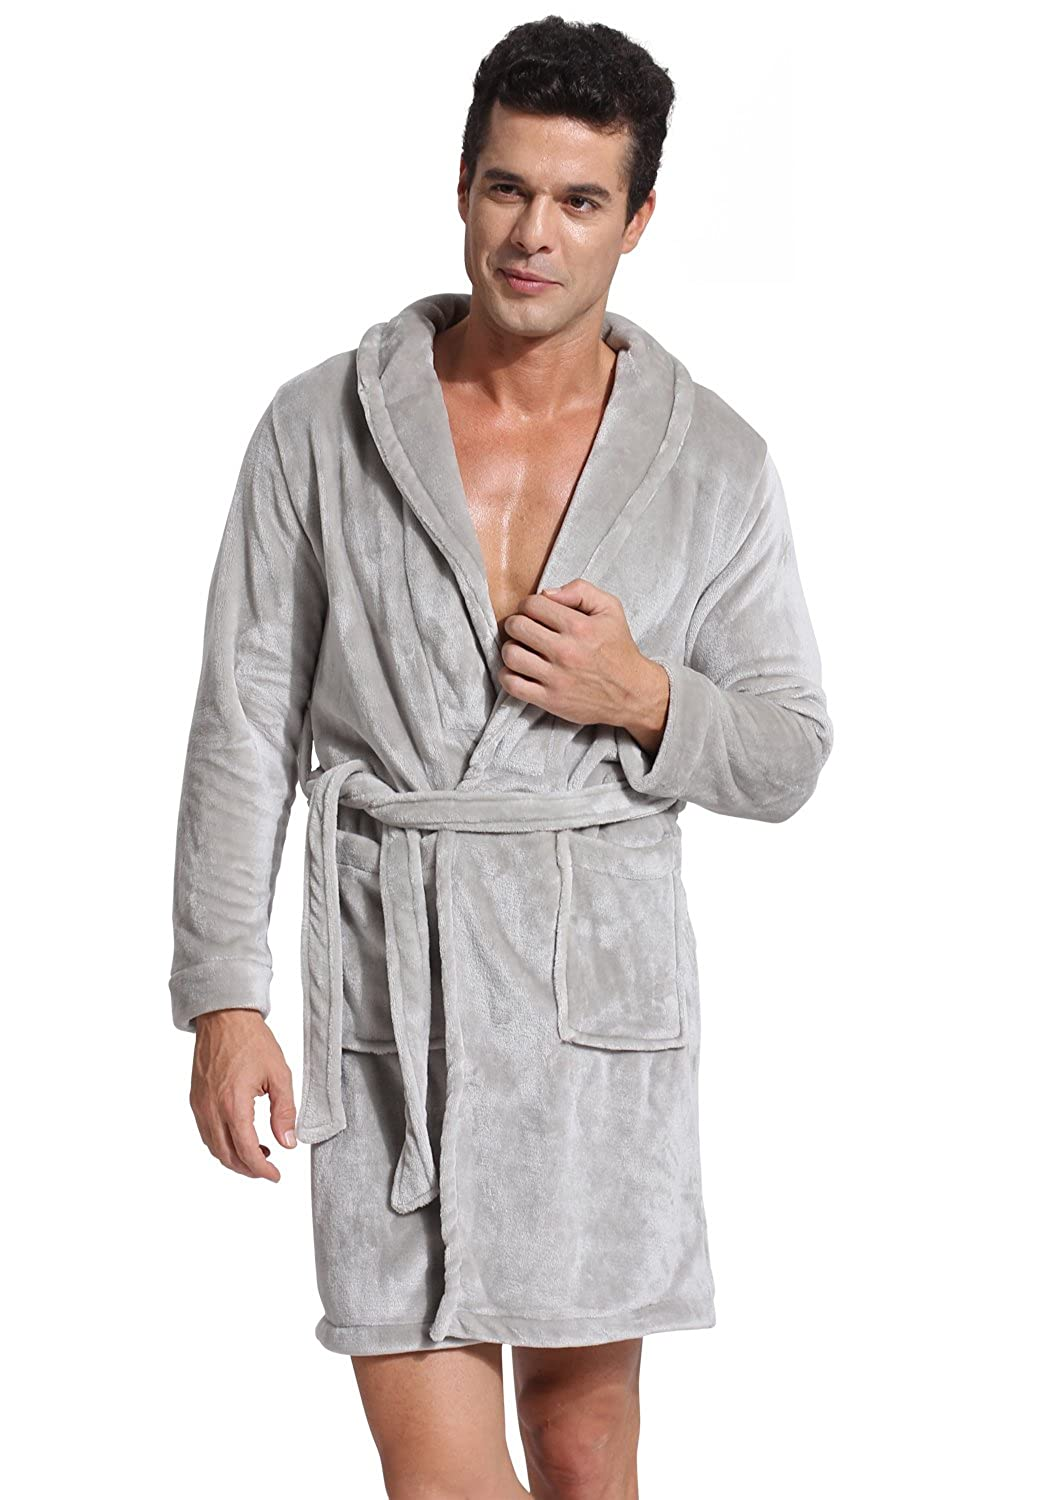 Godsen Men's Winter Fleece Bathrobes Sleepwear Robe 8Y2001